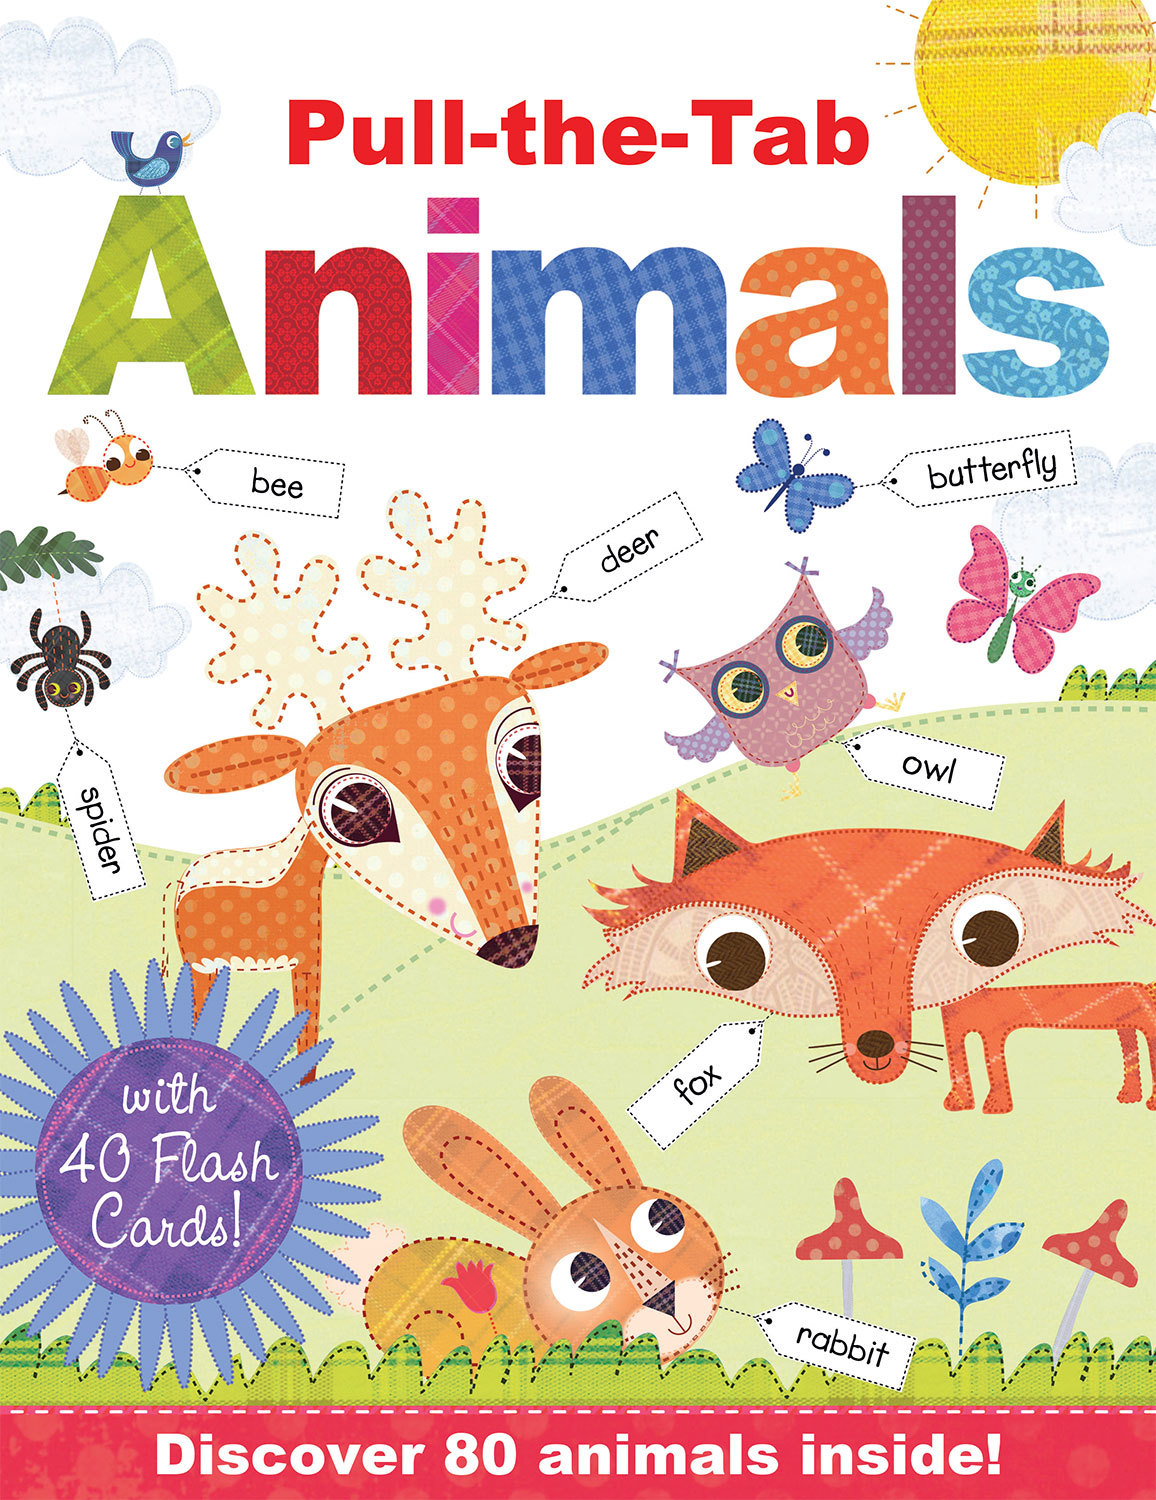 PULL-THE-TAB ANIMALS WITH FLASH CARDS